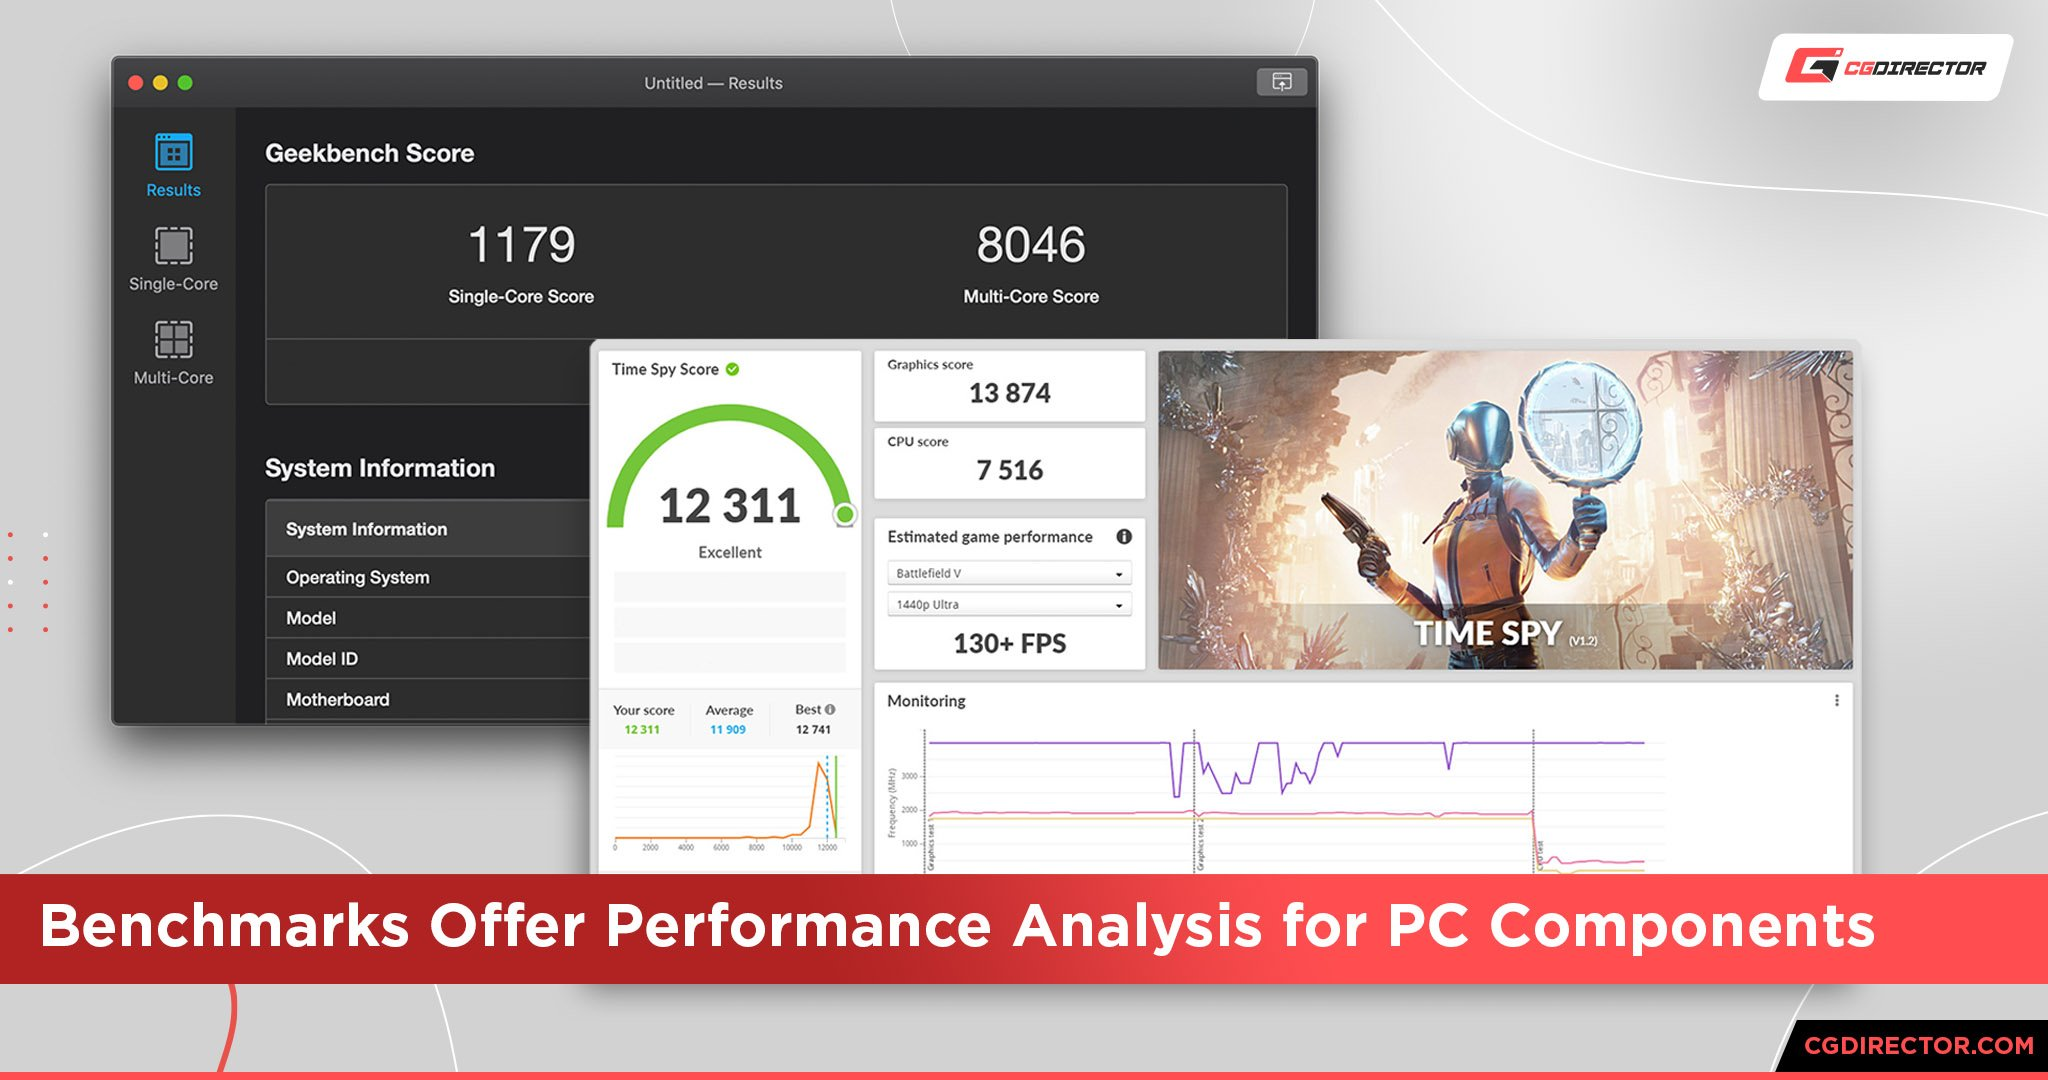 Benchmarks offer performance comparison